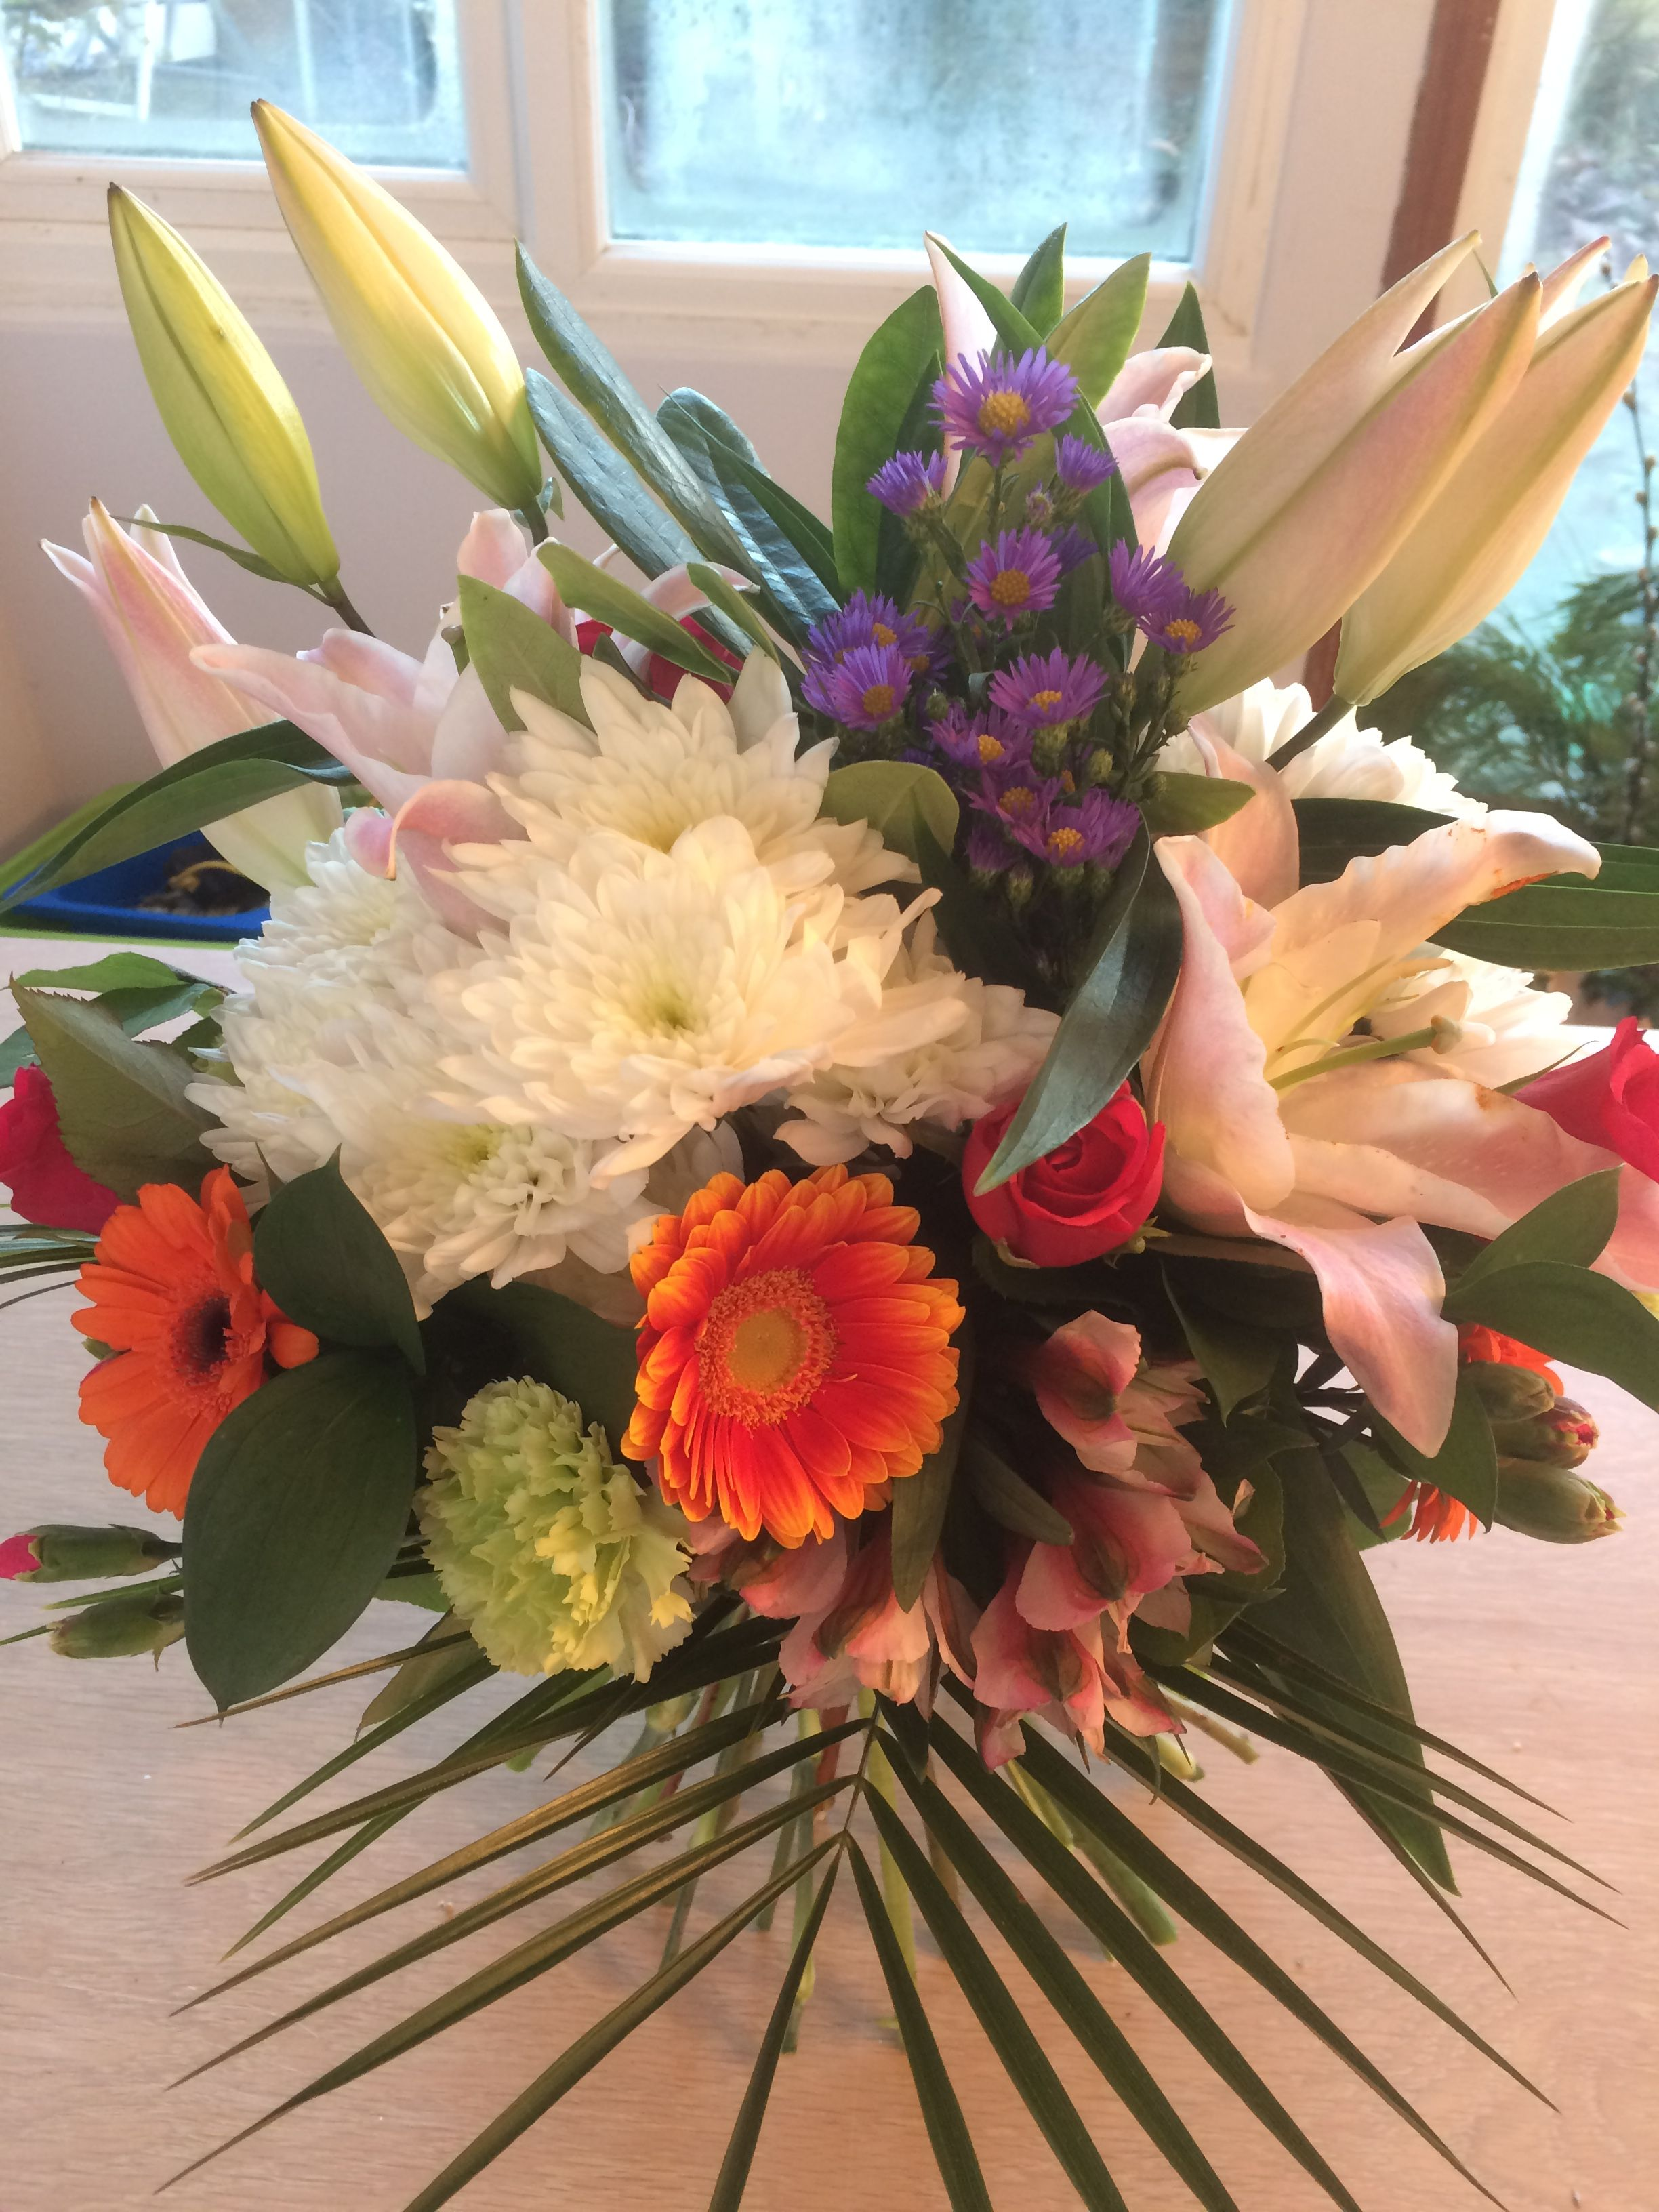 Luxury fresh flower hand tied bouquet from willow house flowers willow house flowers aylesbury florist free same day delivery in aylesbury bucks local on line florist for next day local delivery flowers bouquets izmirmasajfo